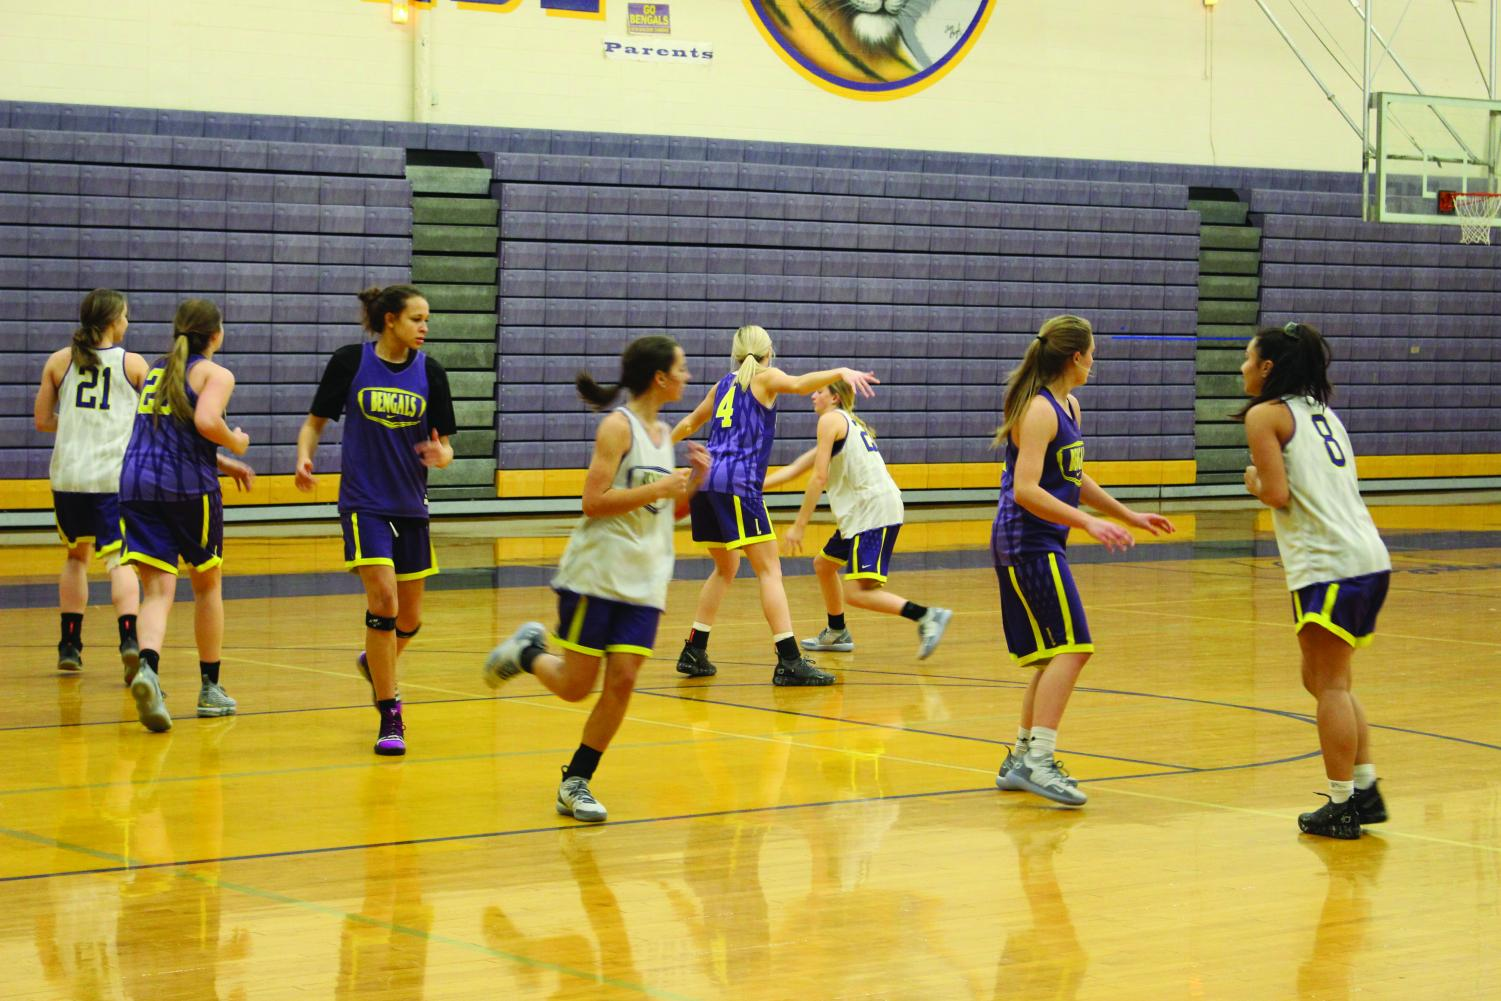 LHS varsity girls work hard at practice Dec. 7, prepping for their game against Pendleton.